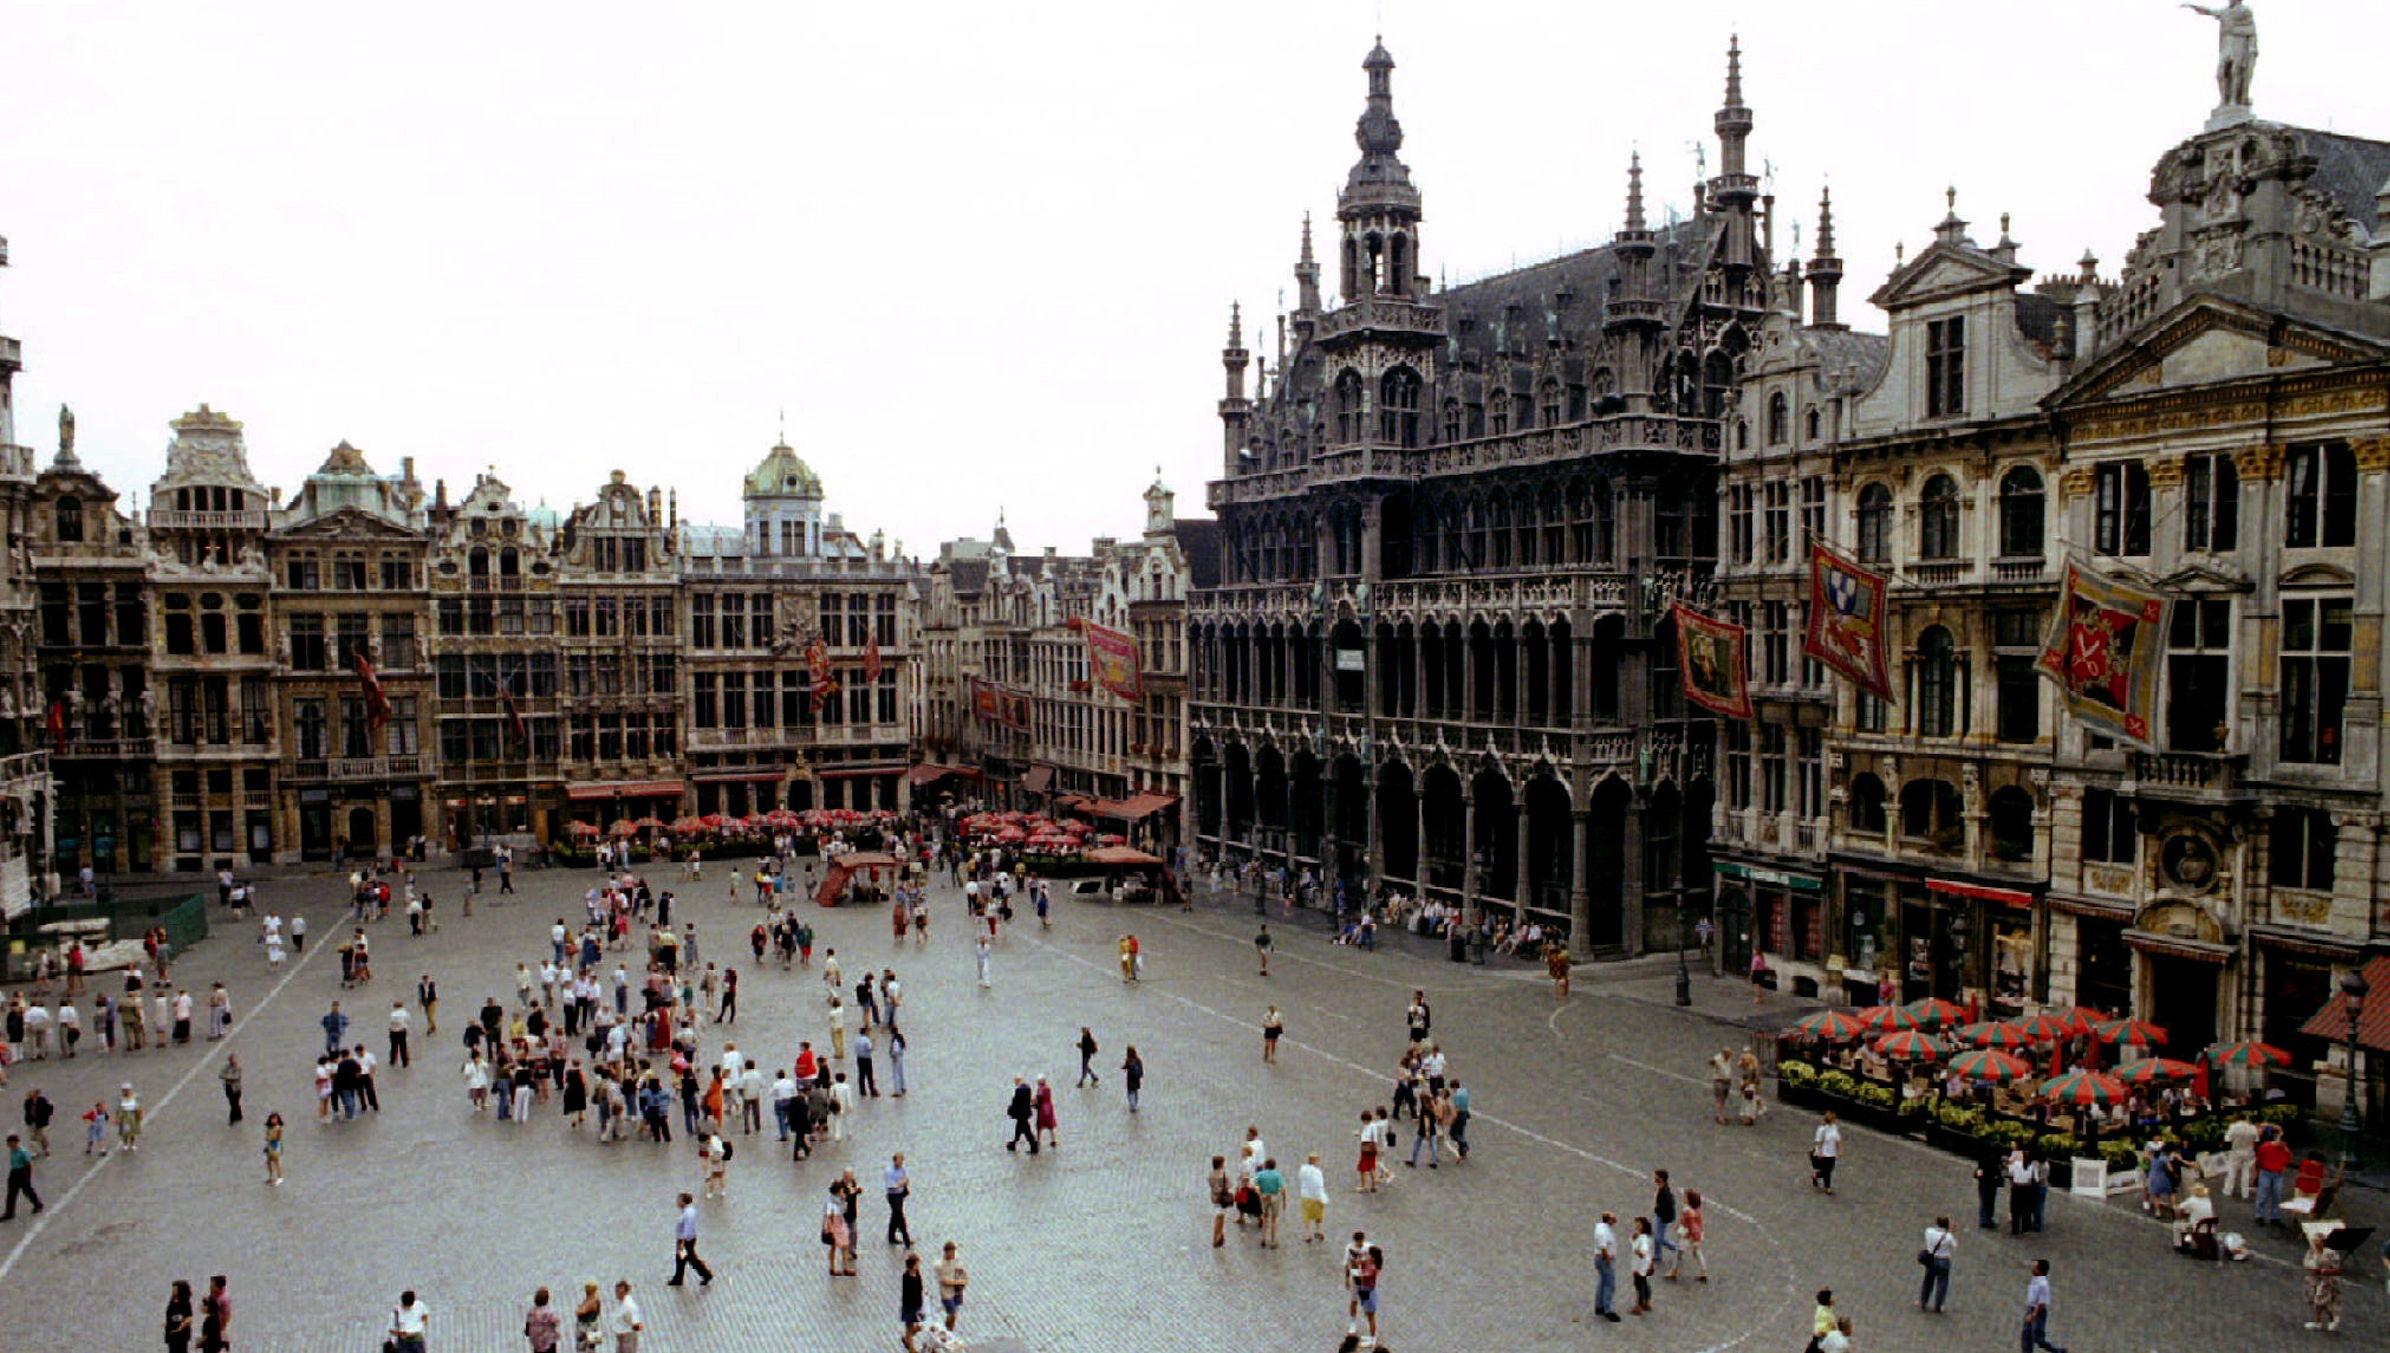 An aerial view of people walking through the Brussels Grand' Place. The city of Brussels commemorates on Aug 15 the 300th anniversary of French bombardment, which set the city ablaze and led to the creation of the Grand' Place. The bombardment destroyed most of the old town, but the square was rebuilt in three years in the exuberant Italo-Flemish baroque style that stands virtually unchanged today - RTXFTC9